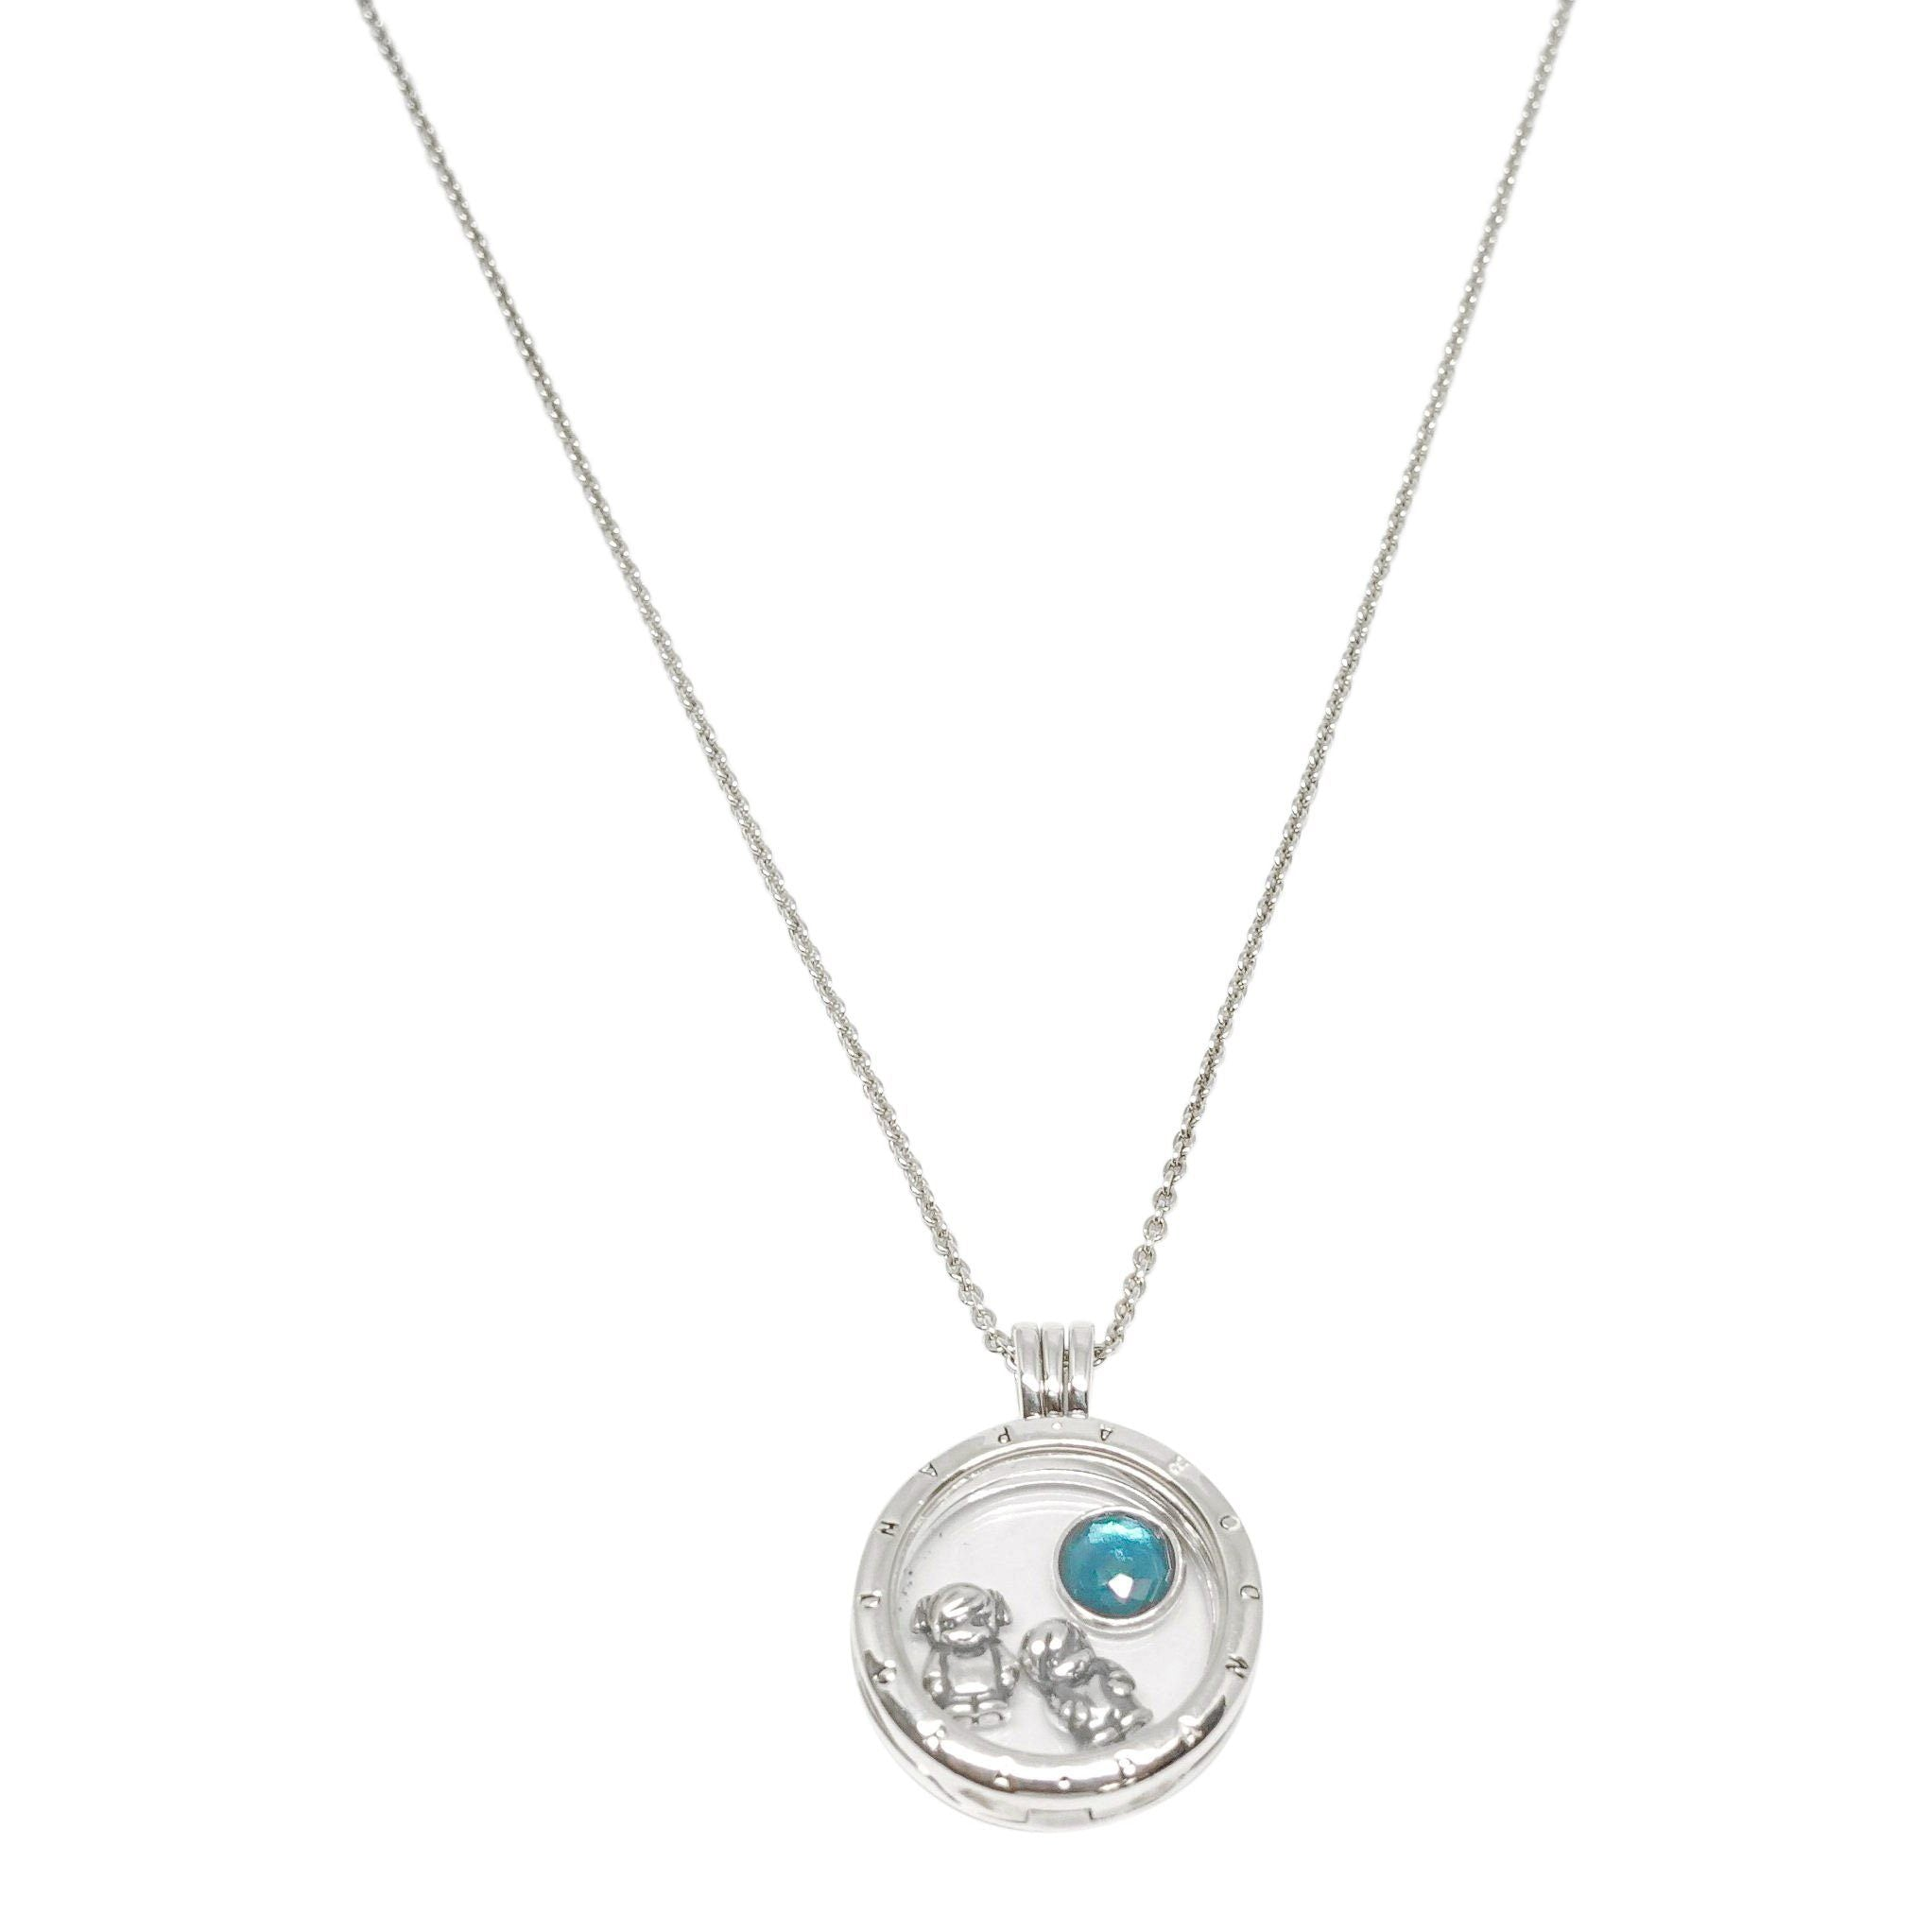 ec03242f0 Pandora Floating Locket Pendant Necklace with 3 Petite Charms Necklaces  Pandora ...